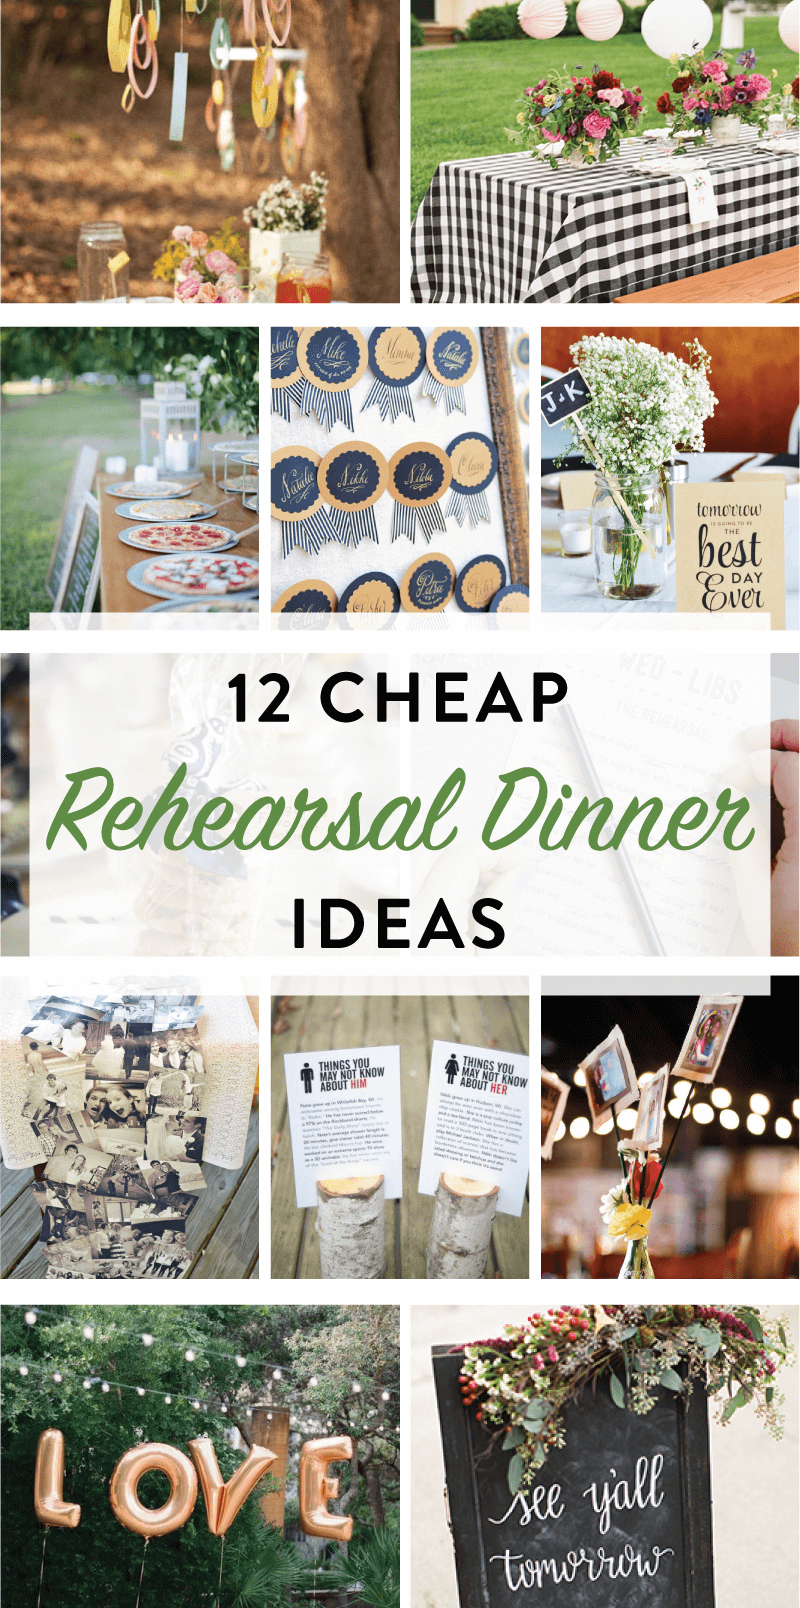 10 Awesome Rehearsal Dinner Table Decorations Ideas 12 cheap rehearsal dinner ideas for the modern bride on love the day 3 2020